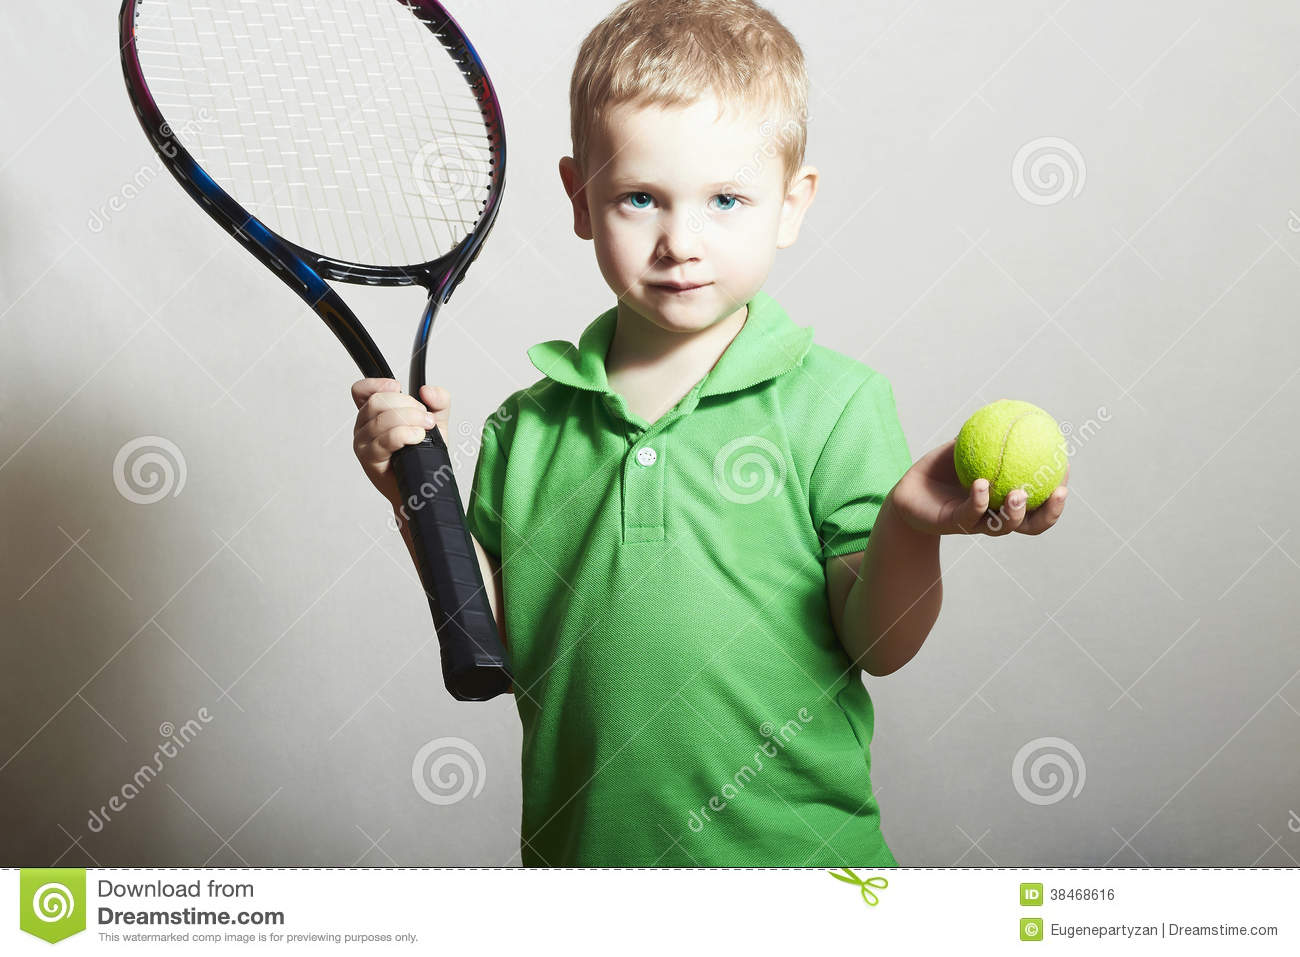 young boy in tennis match royalty free stock image tennis court clipart free tennis court clip art free images